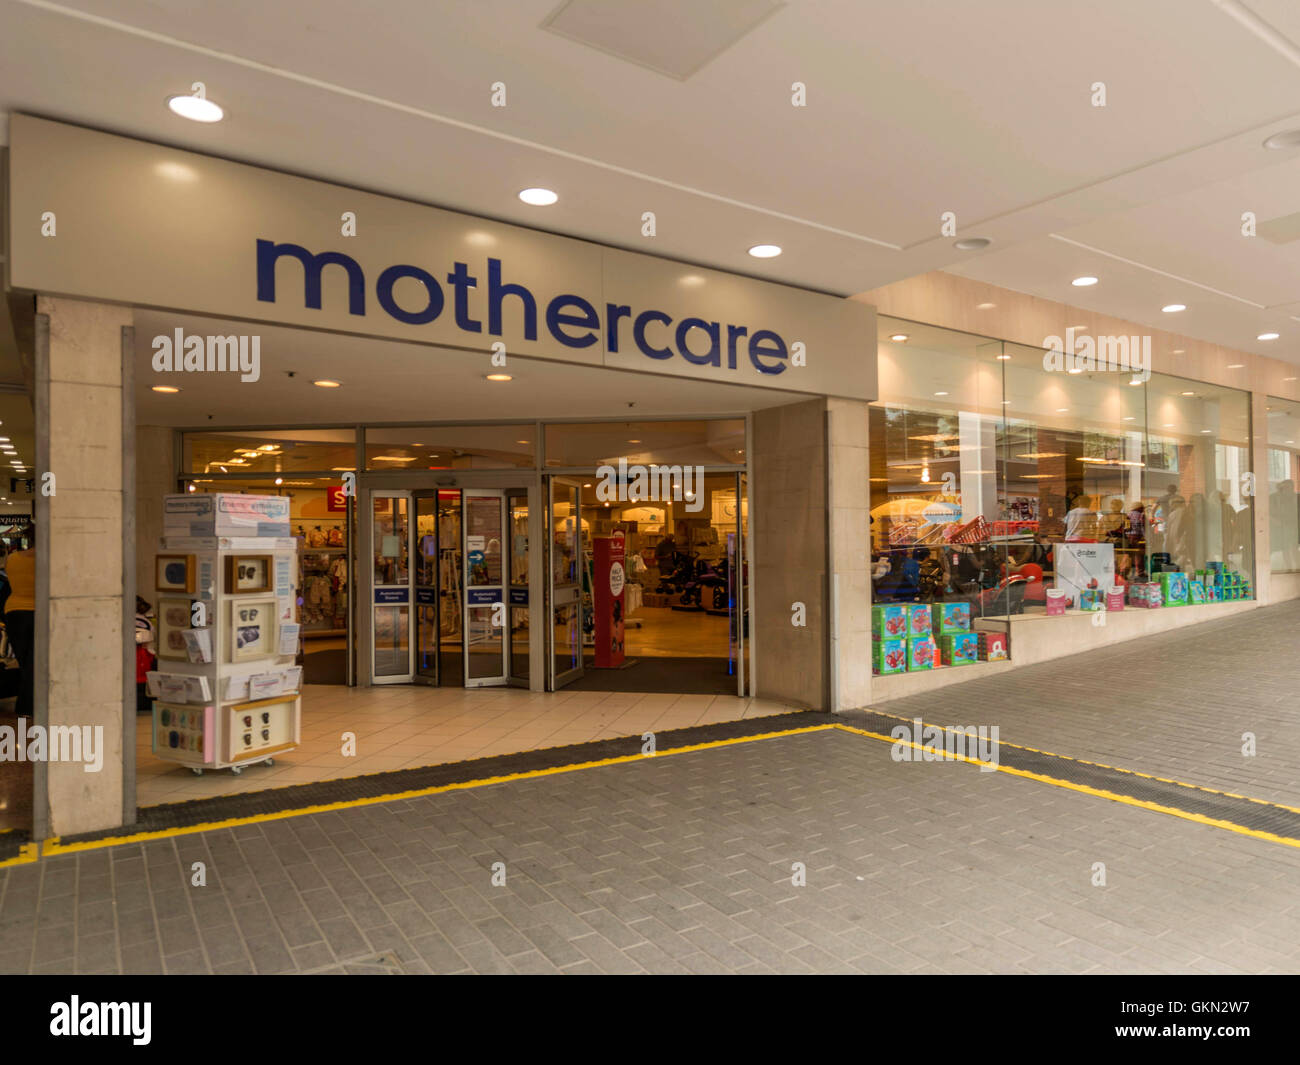 Mothercare Store Stock Photos & Mothercare Store Stock Images - Alamy